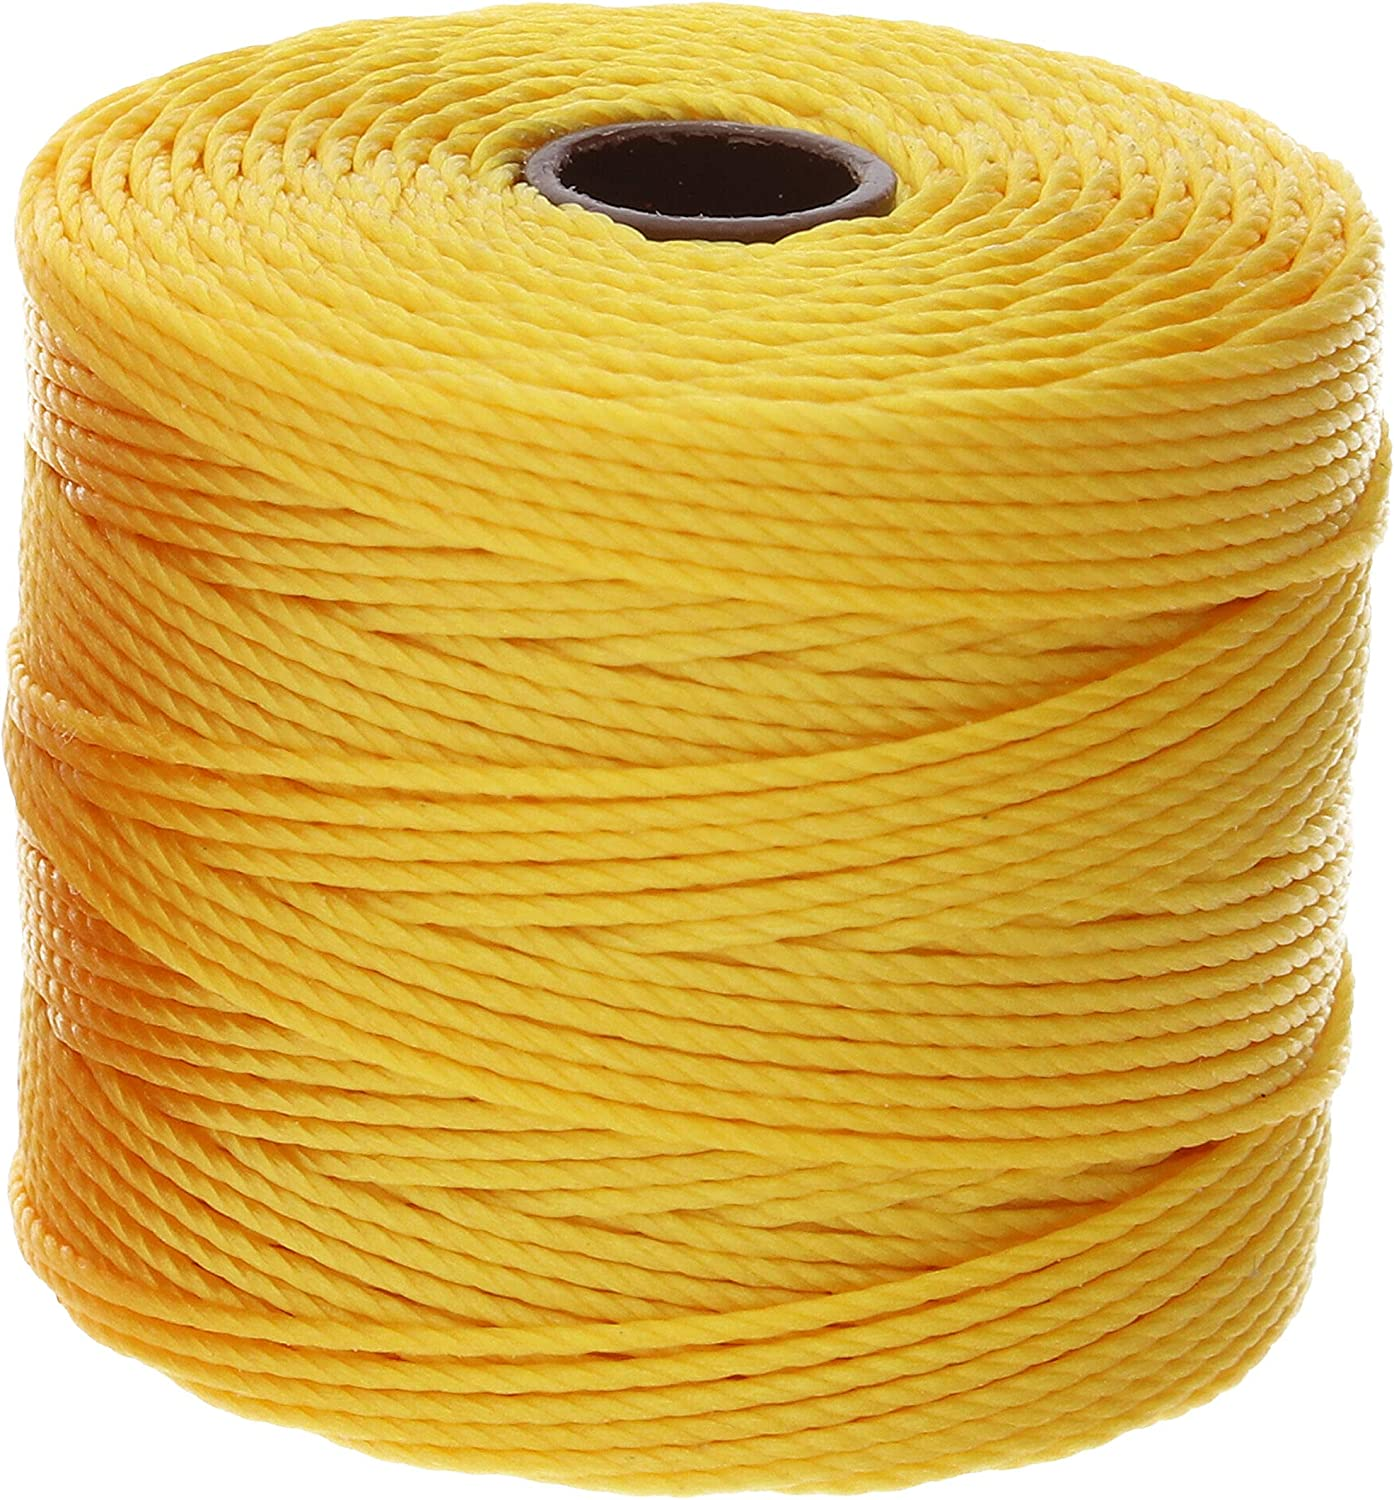 S-Lon Cord Great for Micro-Macrame 77 yard spool #18 Orange Kumihimo and More From BeadSmith